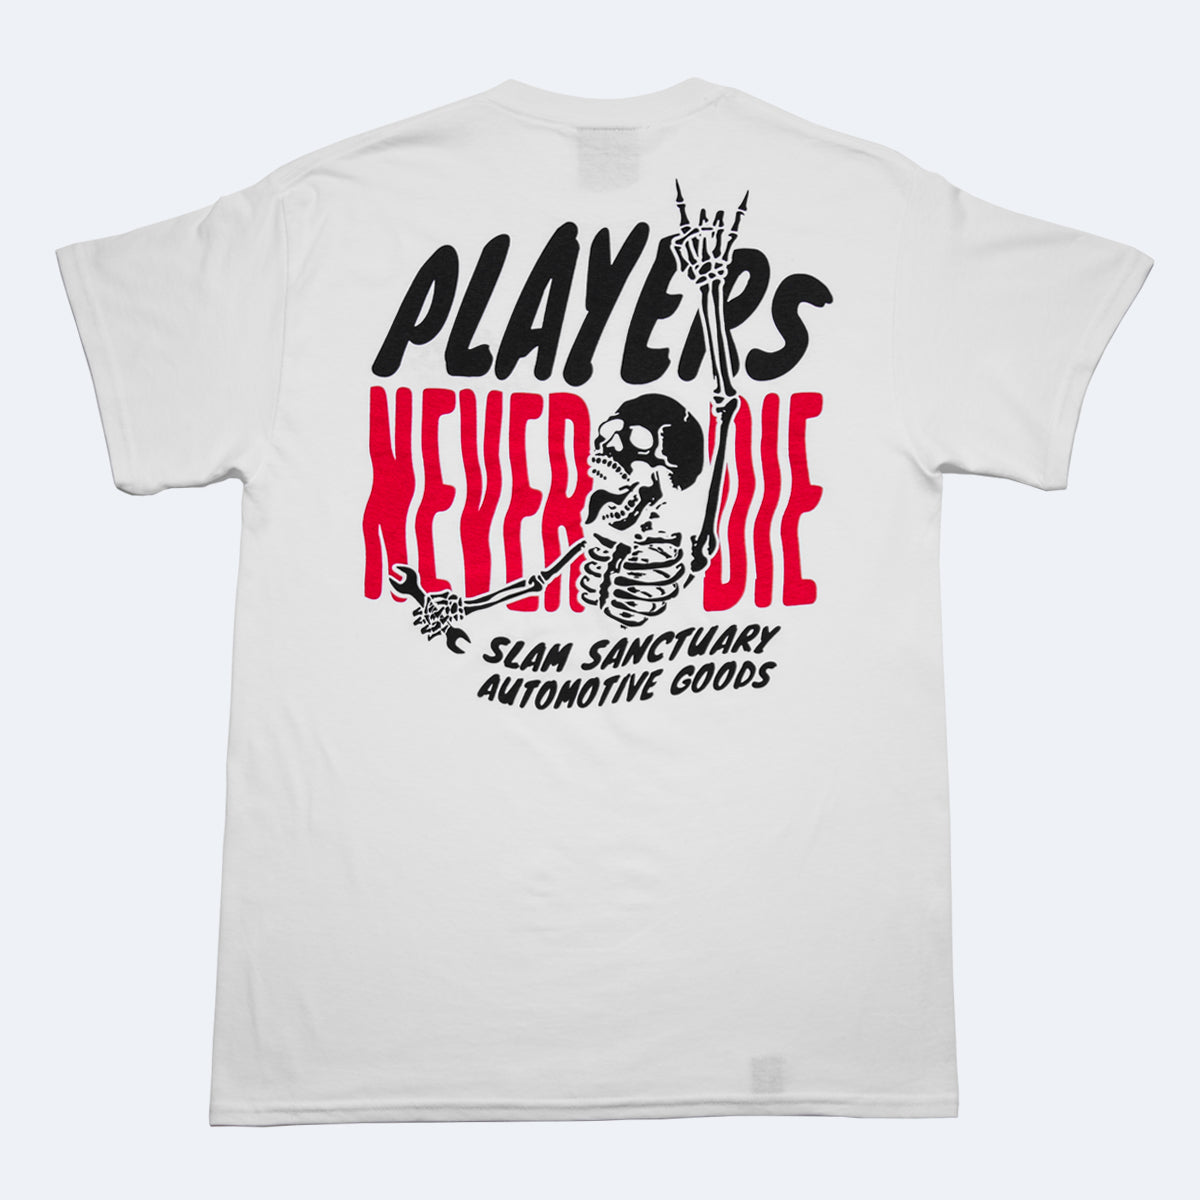 PLAYERS X SLAM SANCTUARY T-SHIRT